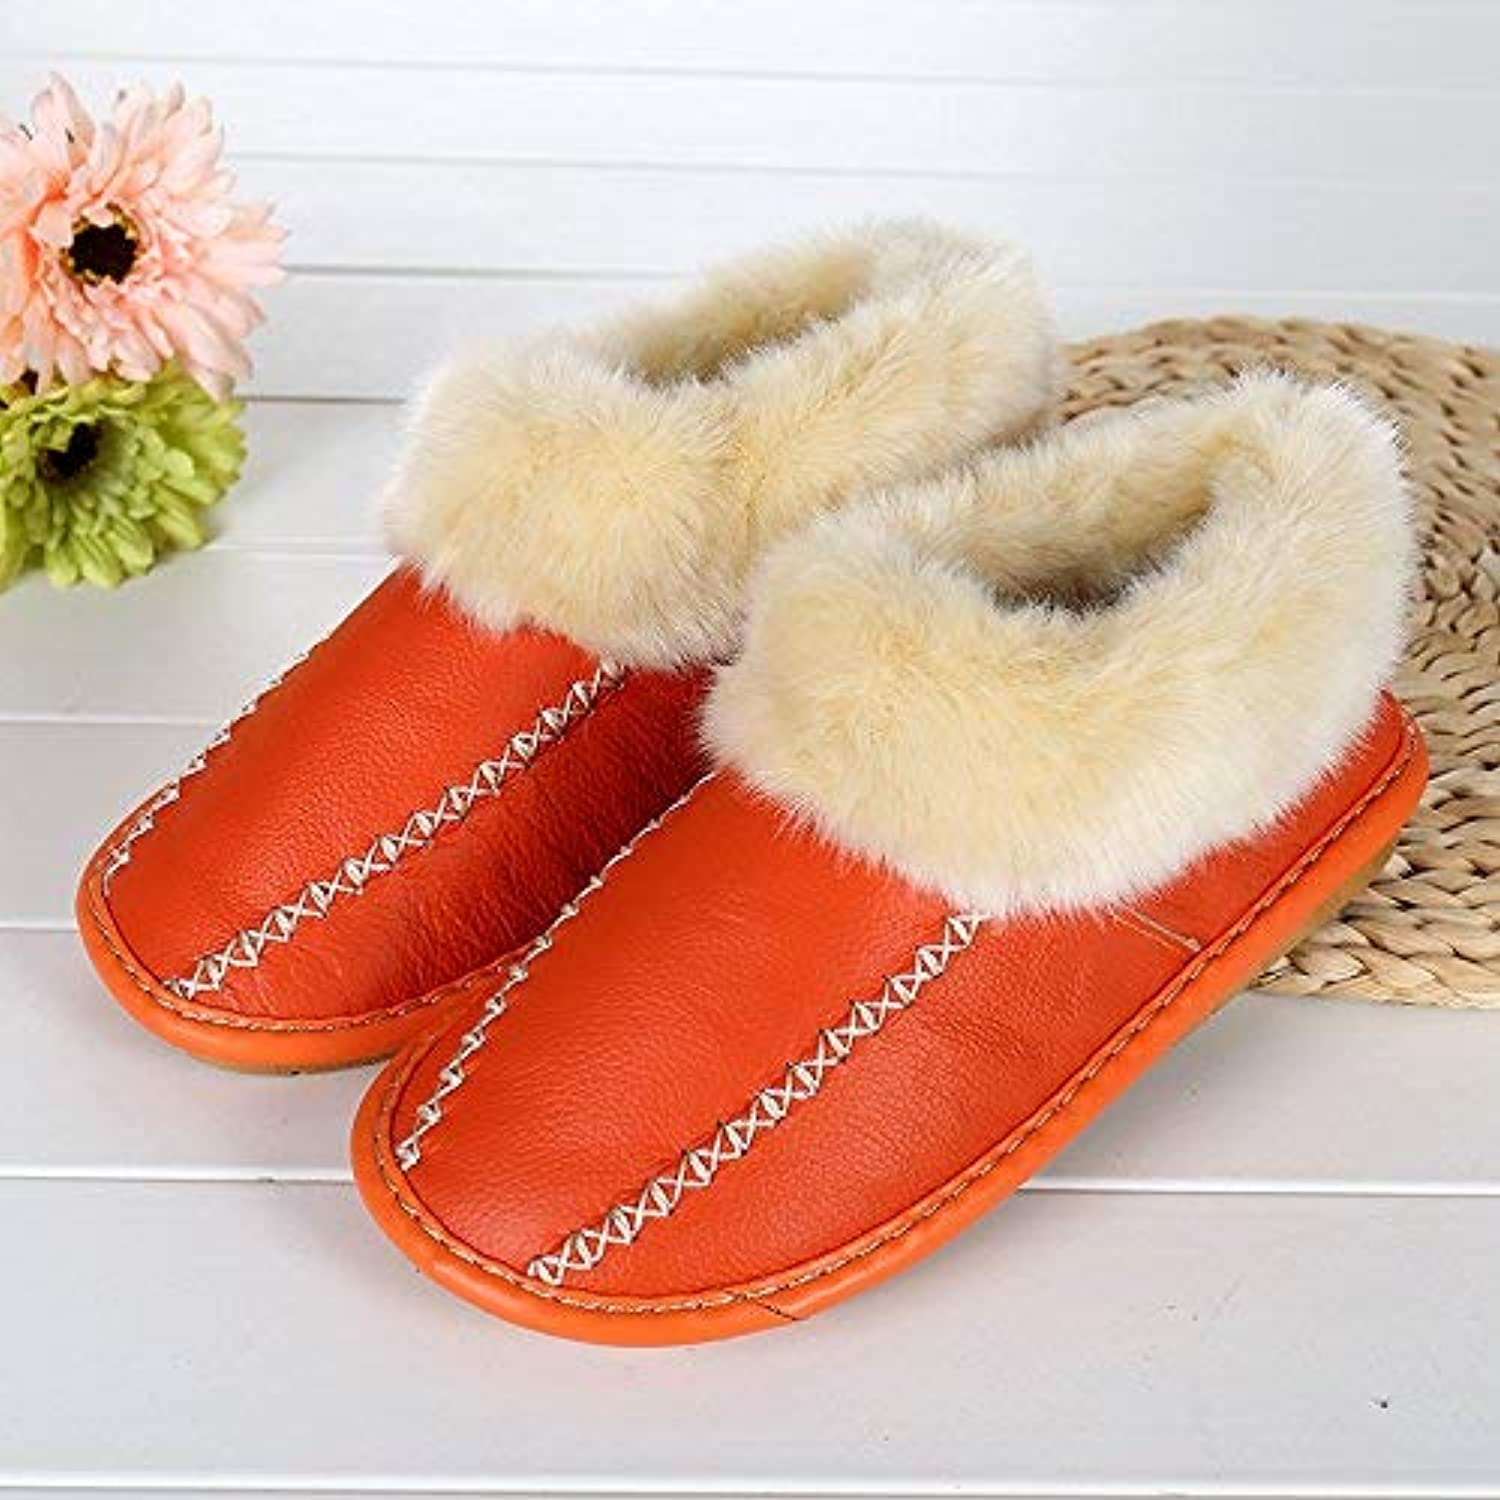 Lady Slippers Ladies Casual Faux-Leather Padded Slippers Home Warm in Autumn and Winter Solid color Super Soft Plush Indoor Slippers Size 38